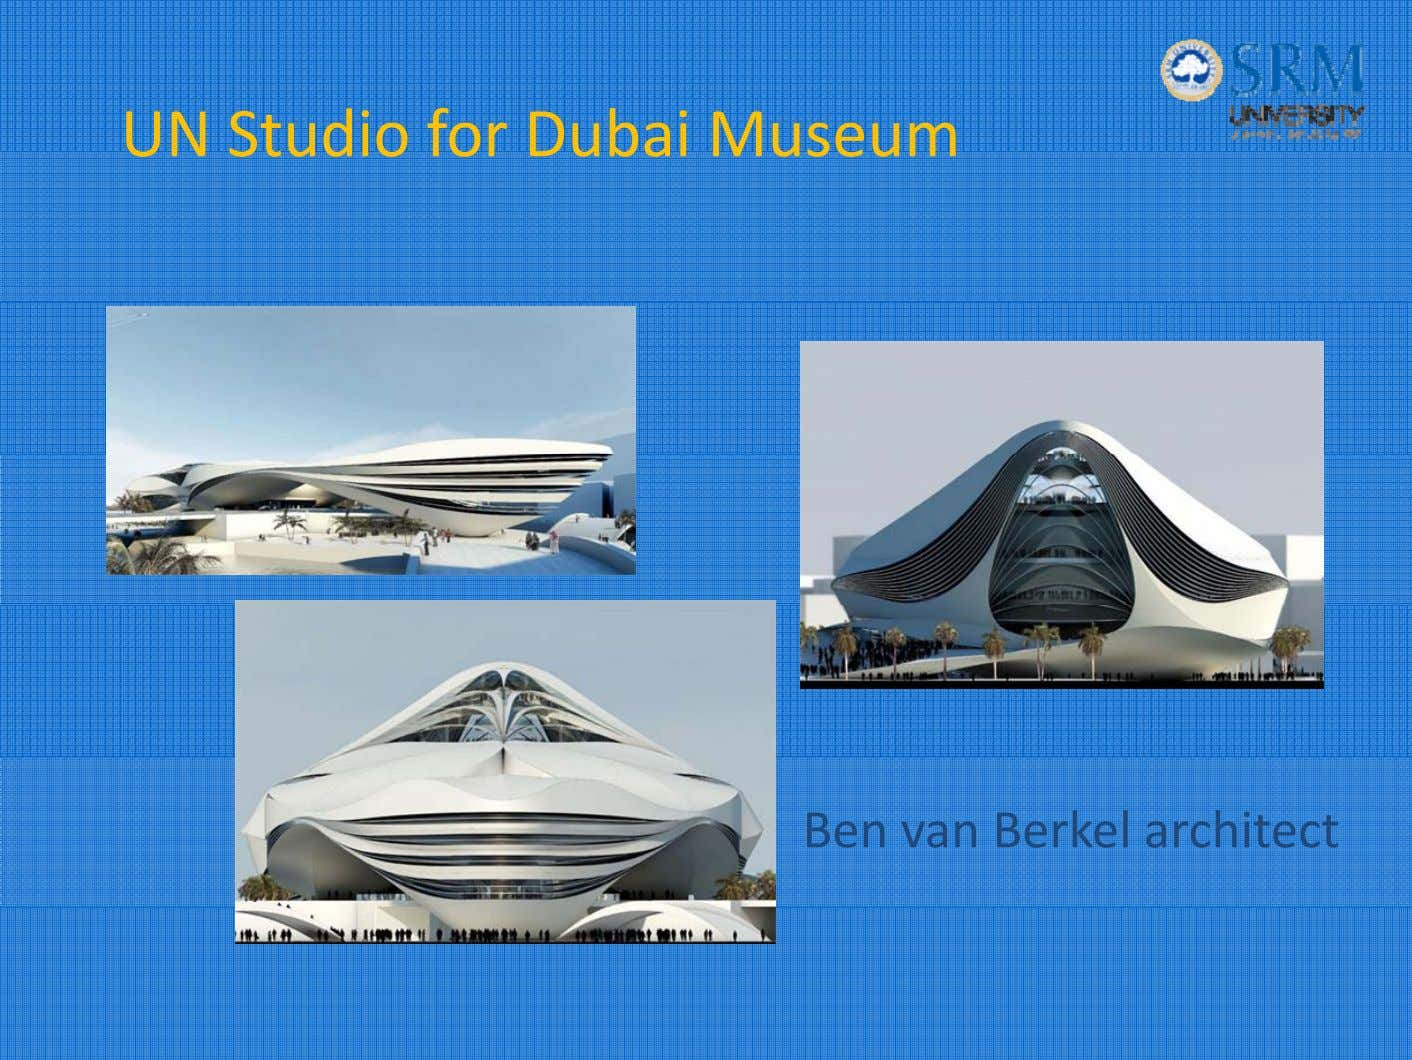 UN Studio for Dubai Museum Ben van Berkel architect